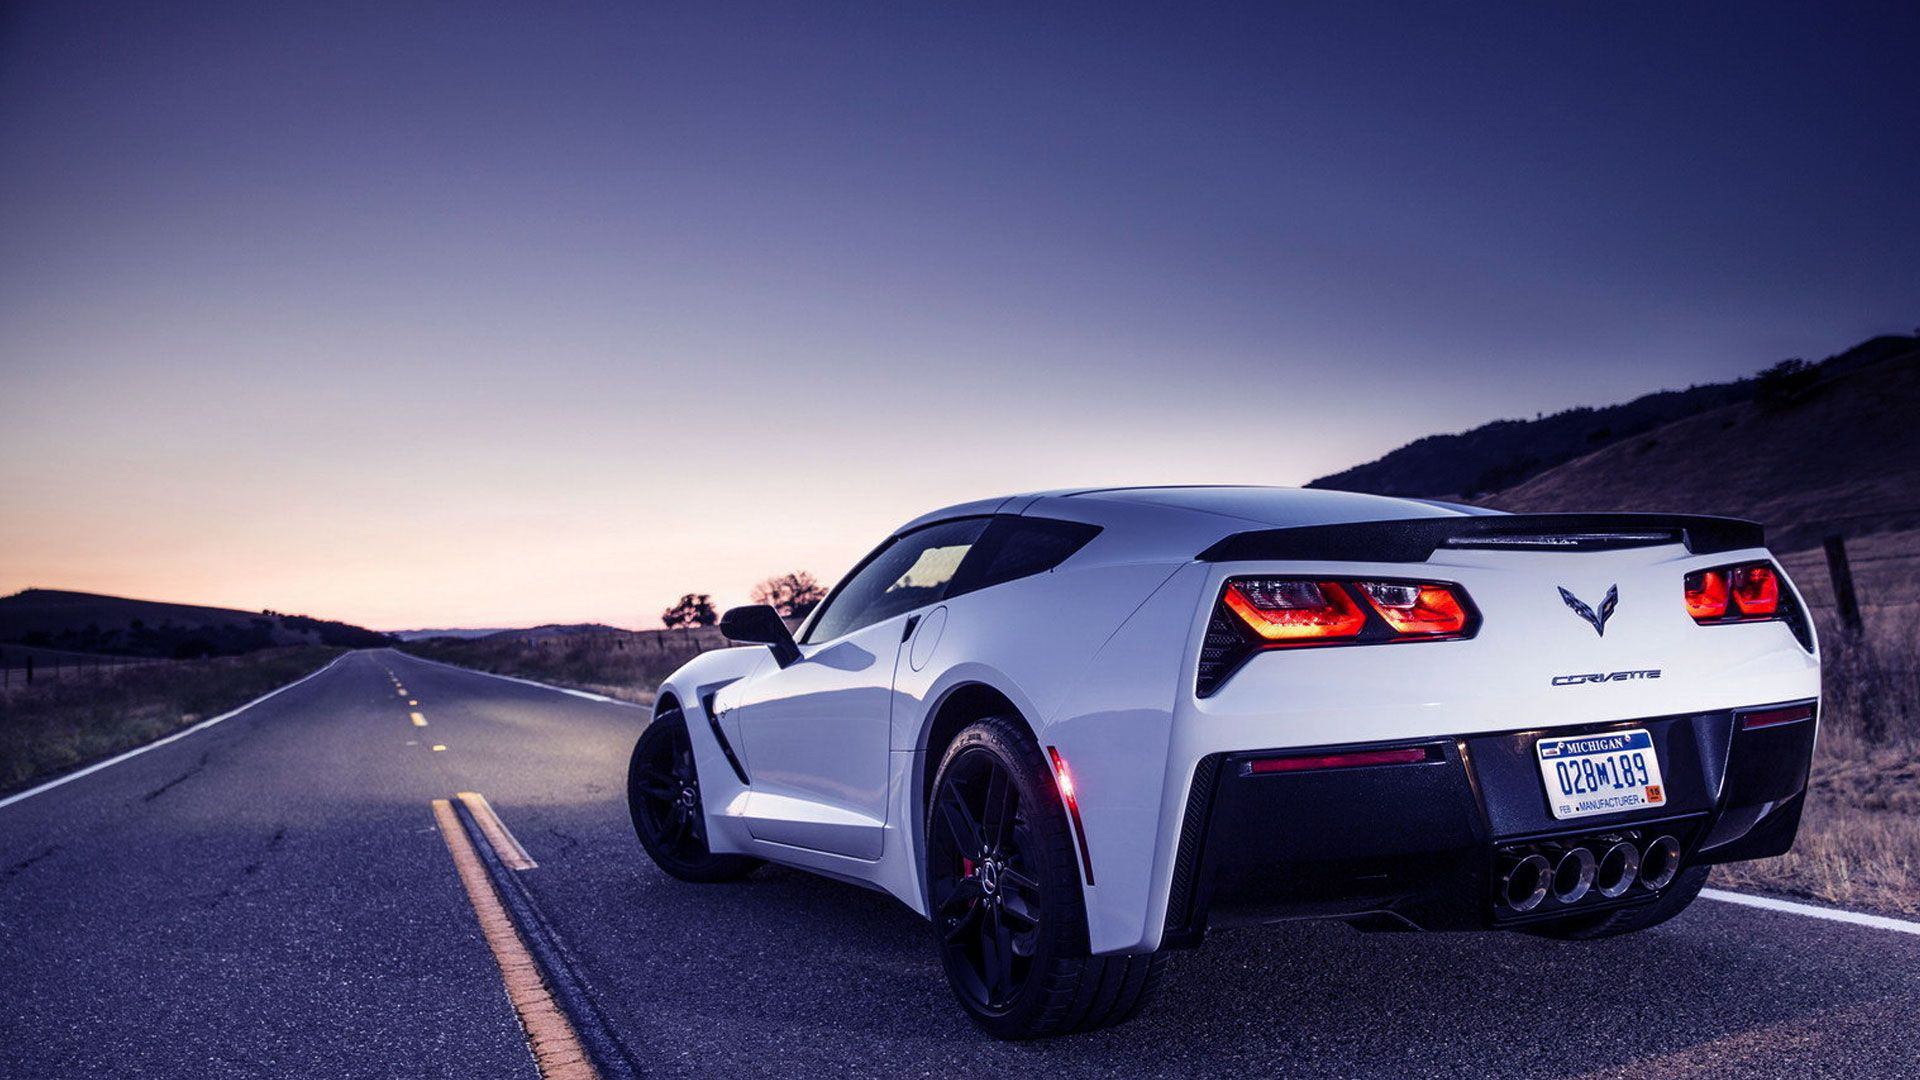 Chevrolet corvette grand sport wallpaper hd car wallpapers 1600 1200 corvette wallpaper 49 wallpapers